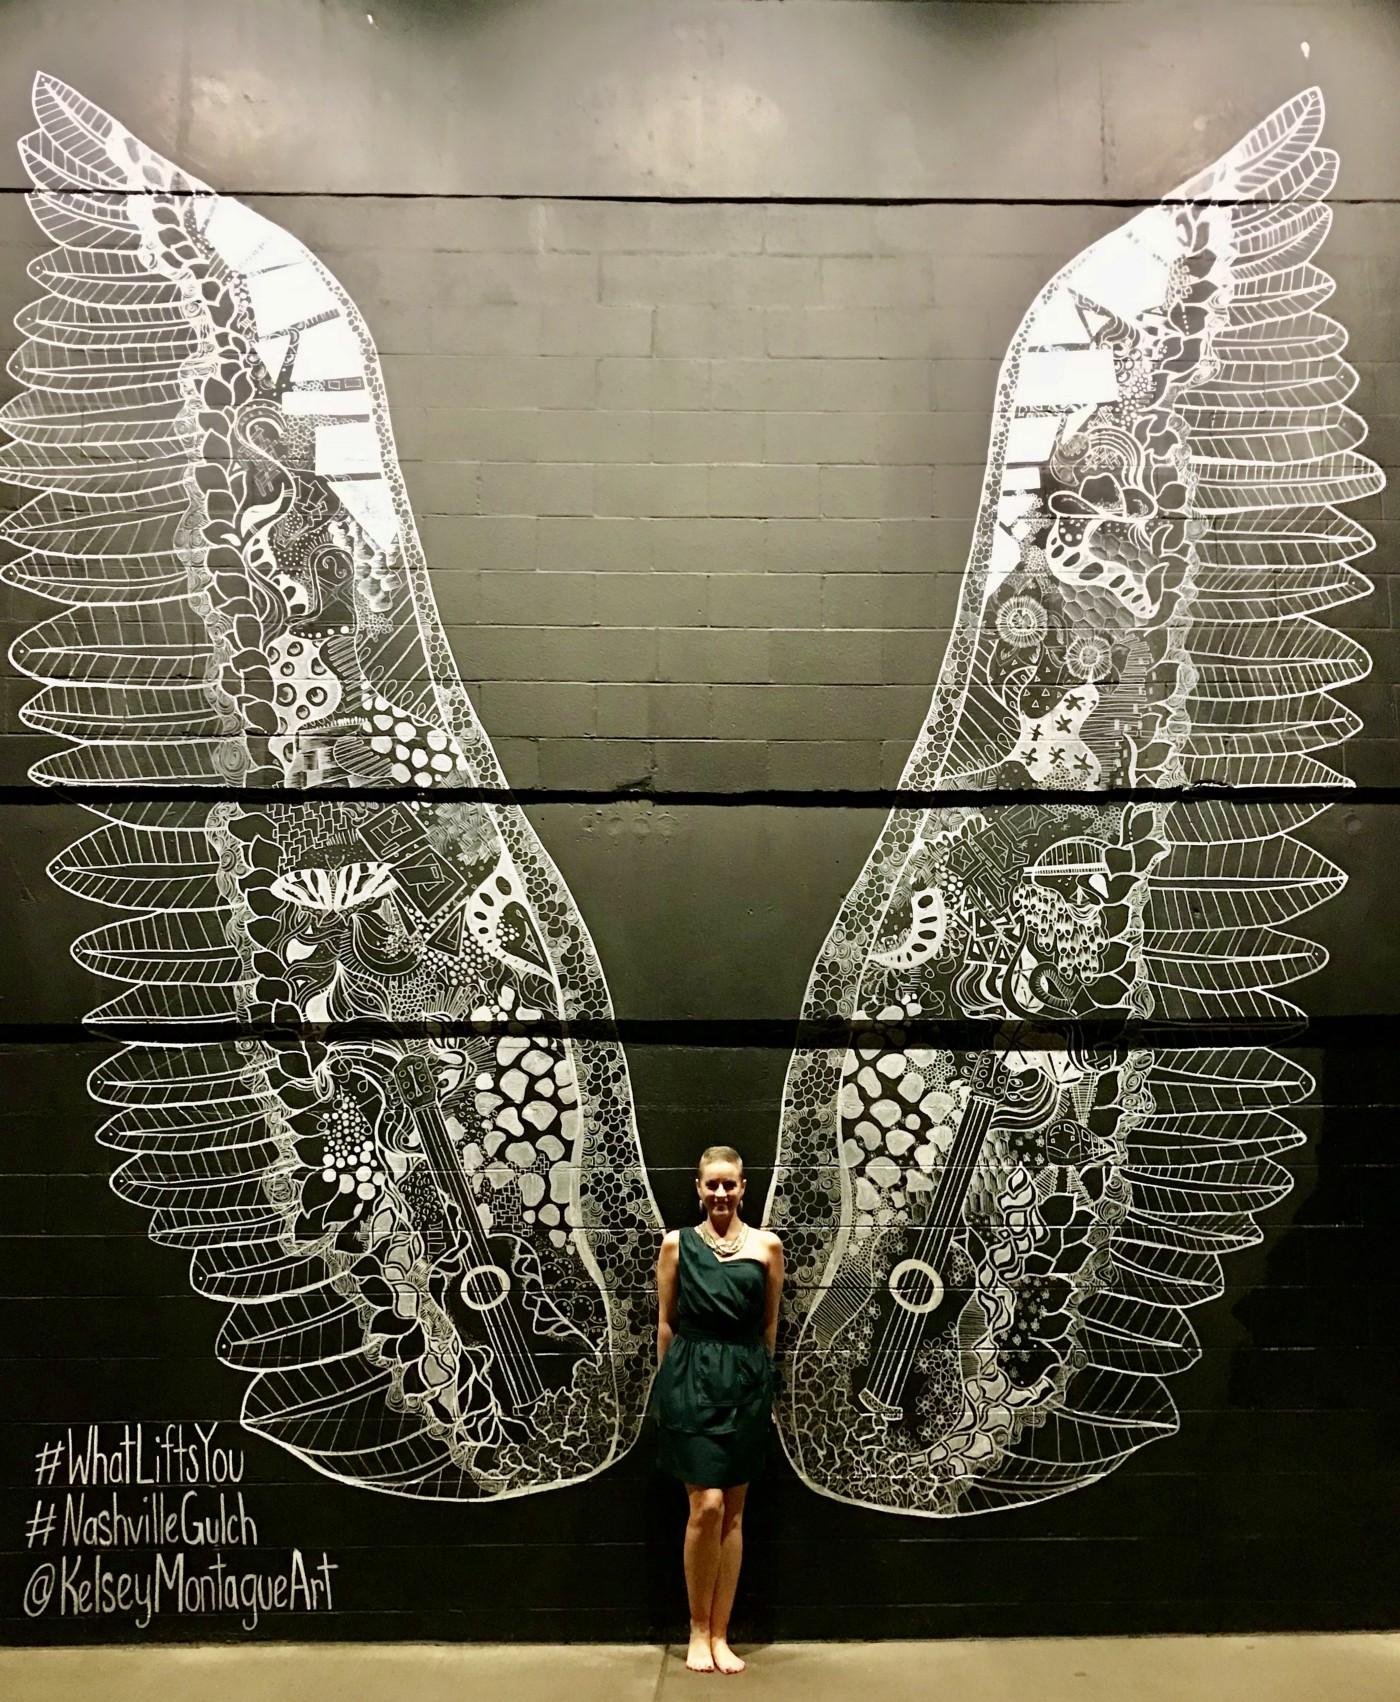 A photo of the author's wife in front of a wall painting of wings.